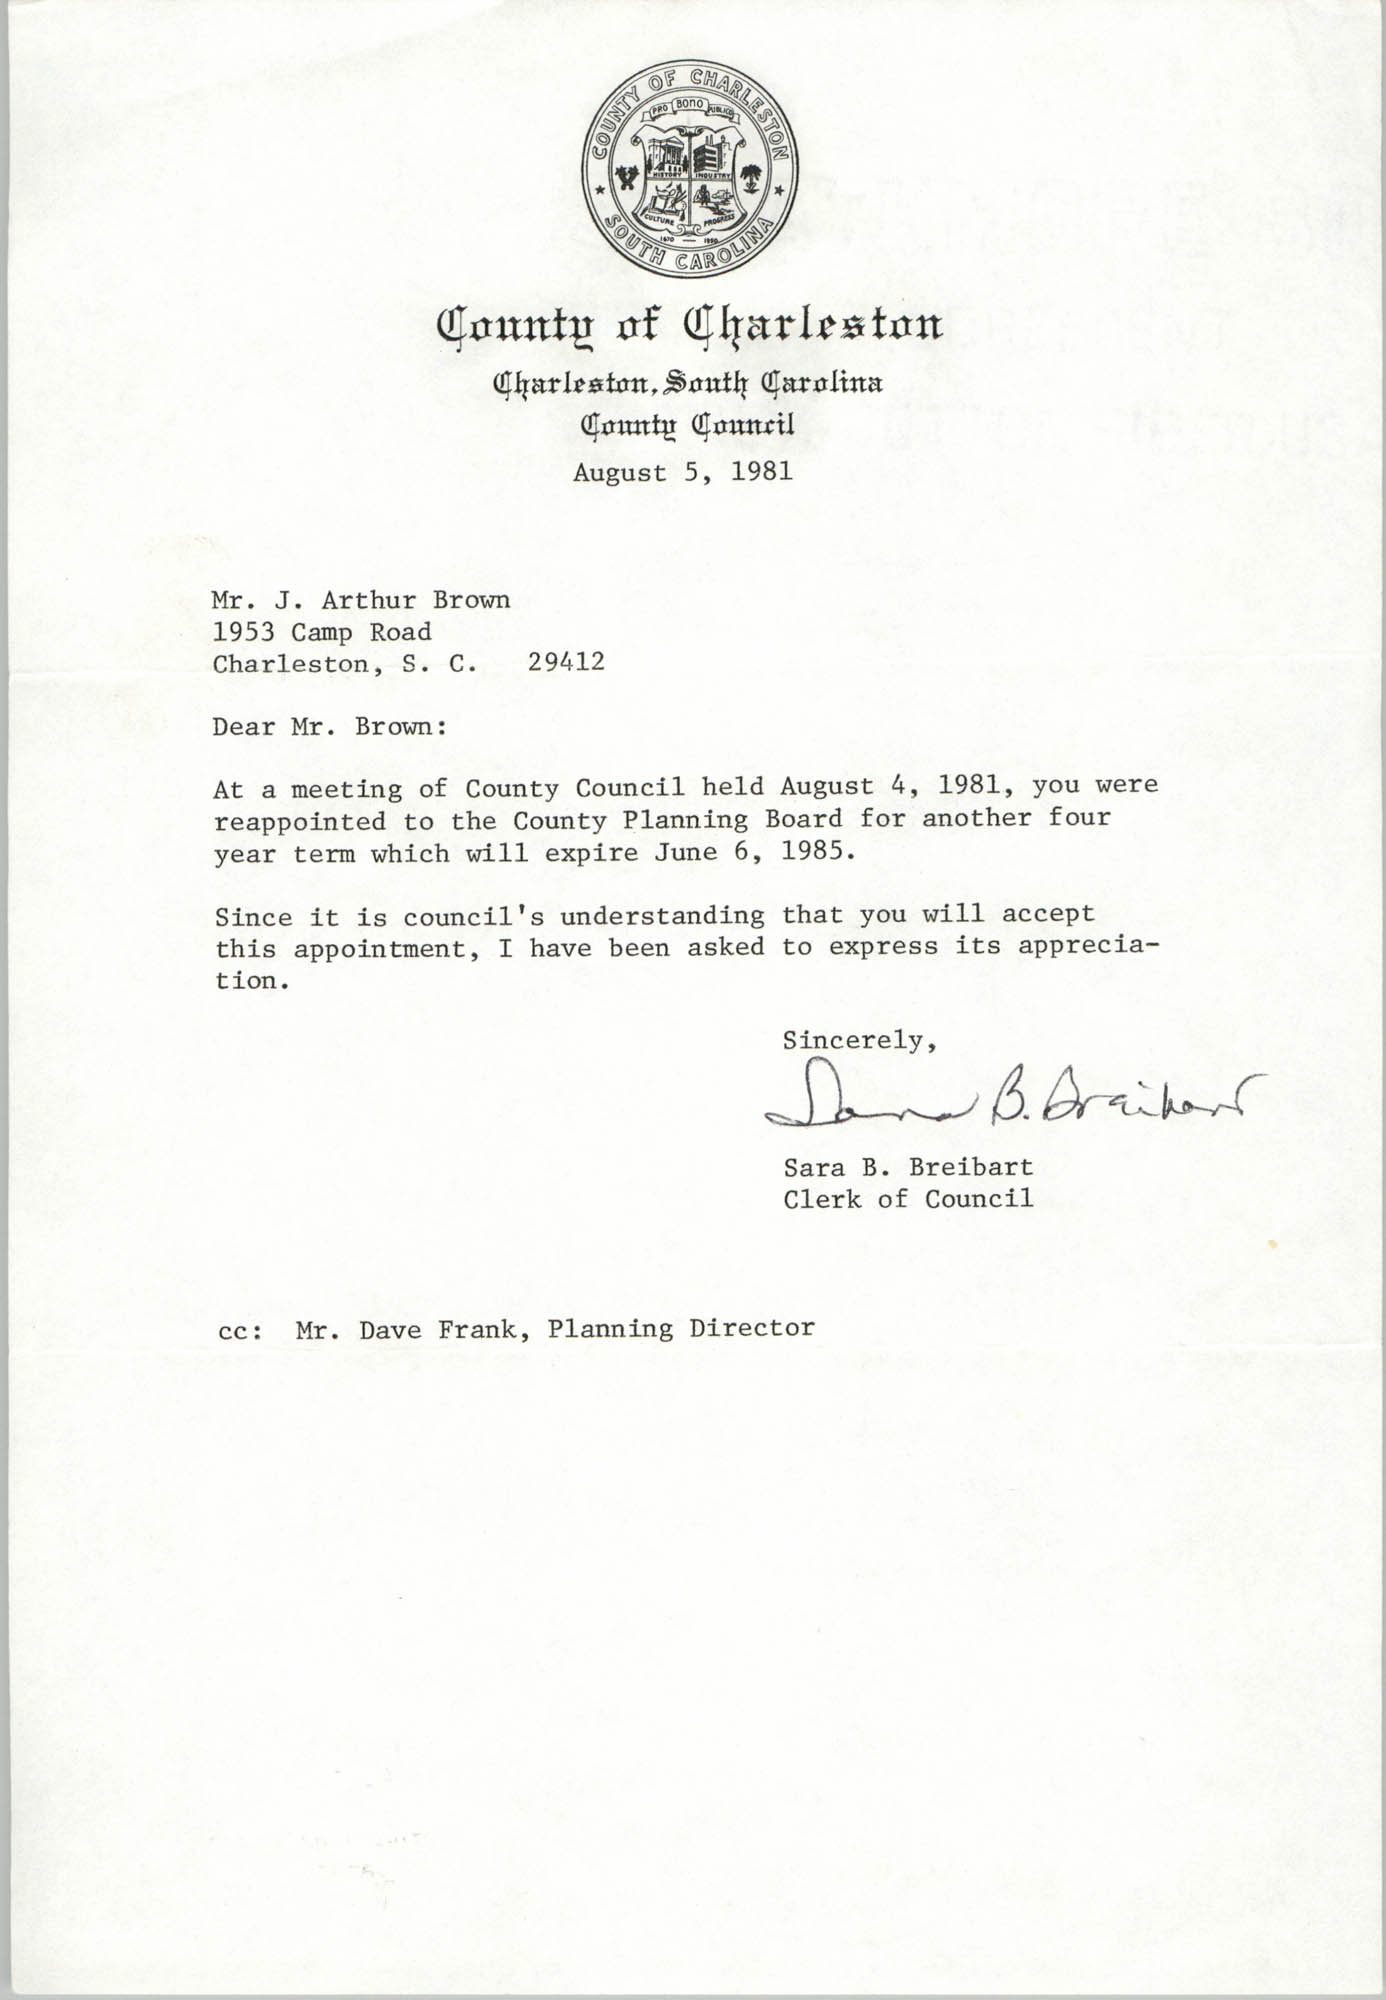 Letter from Sara B. Breibart to J. Arthur Brown, August 5, 1981